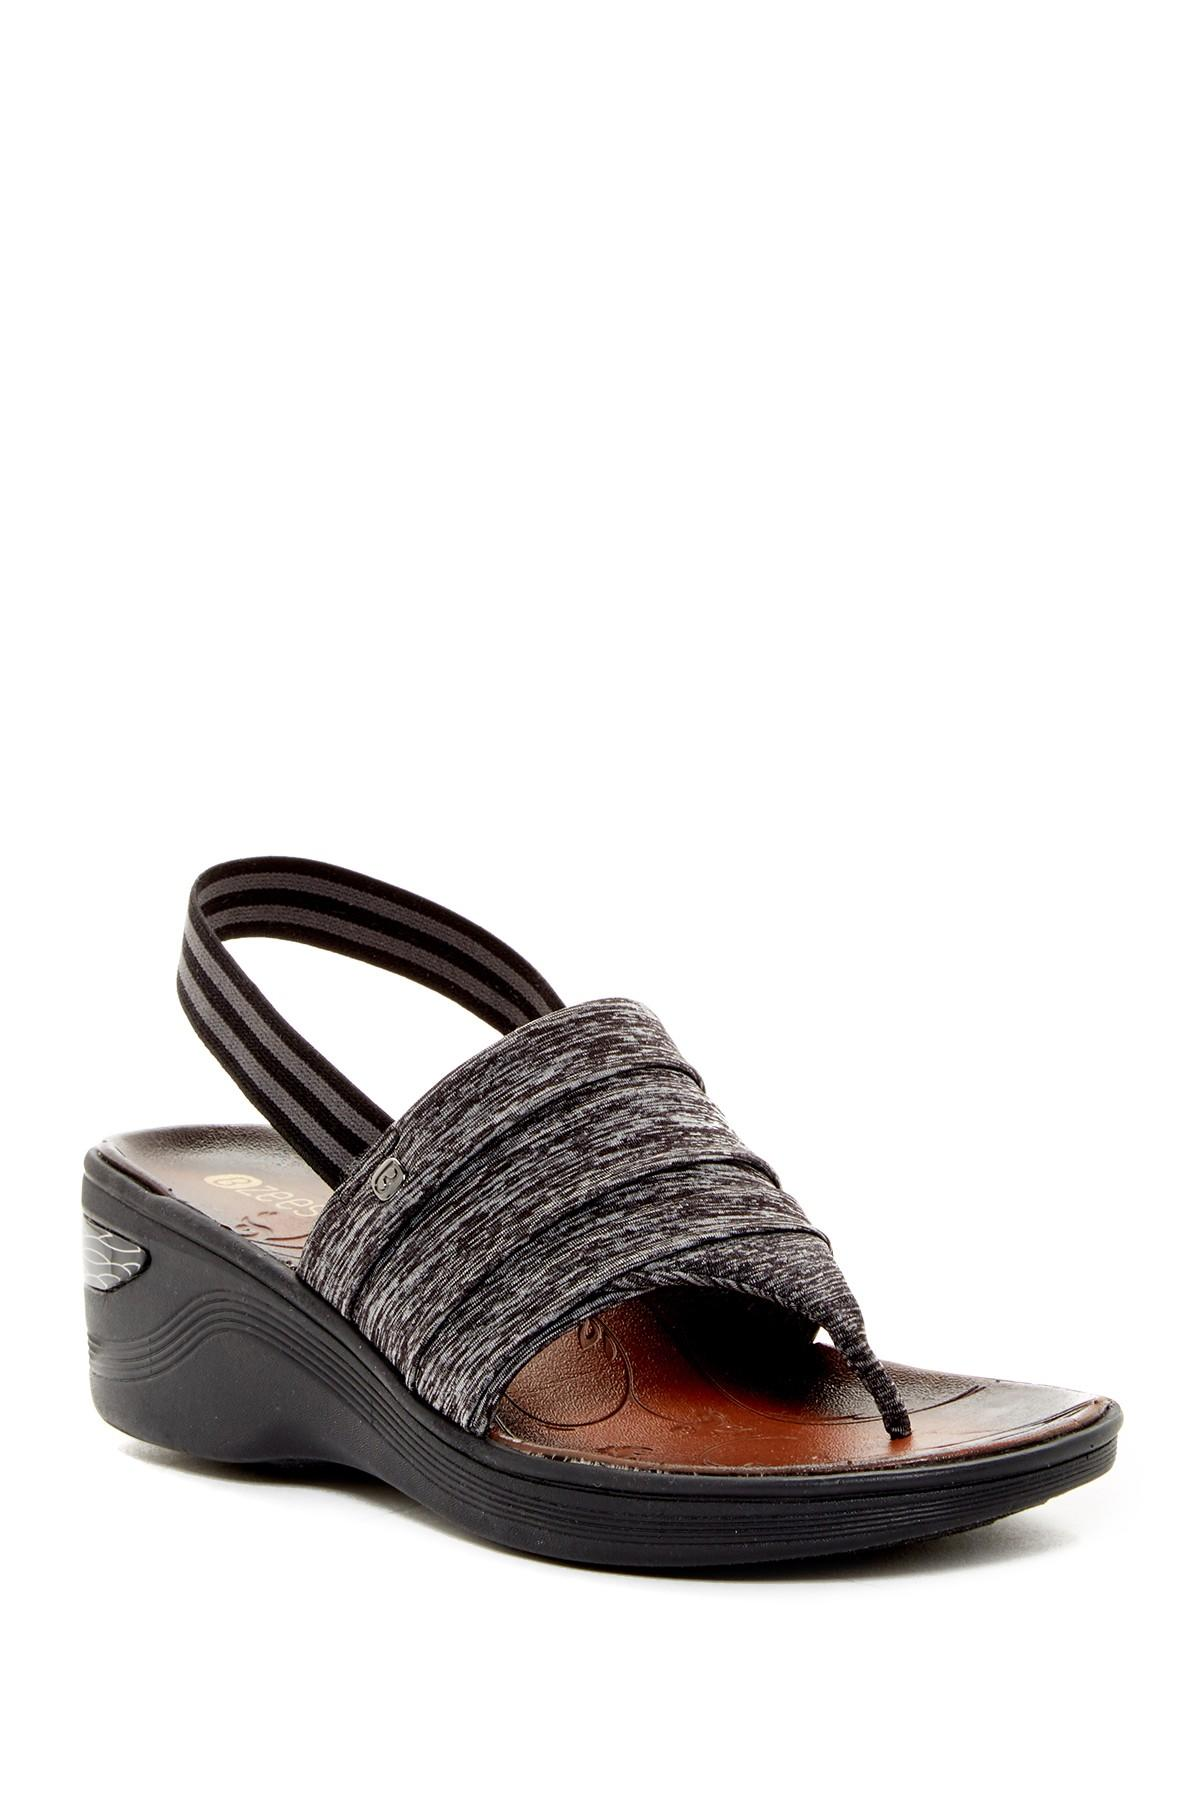 Lyst Bzees Dazzle Wedge Sandal In Black